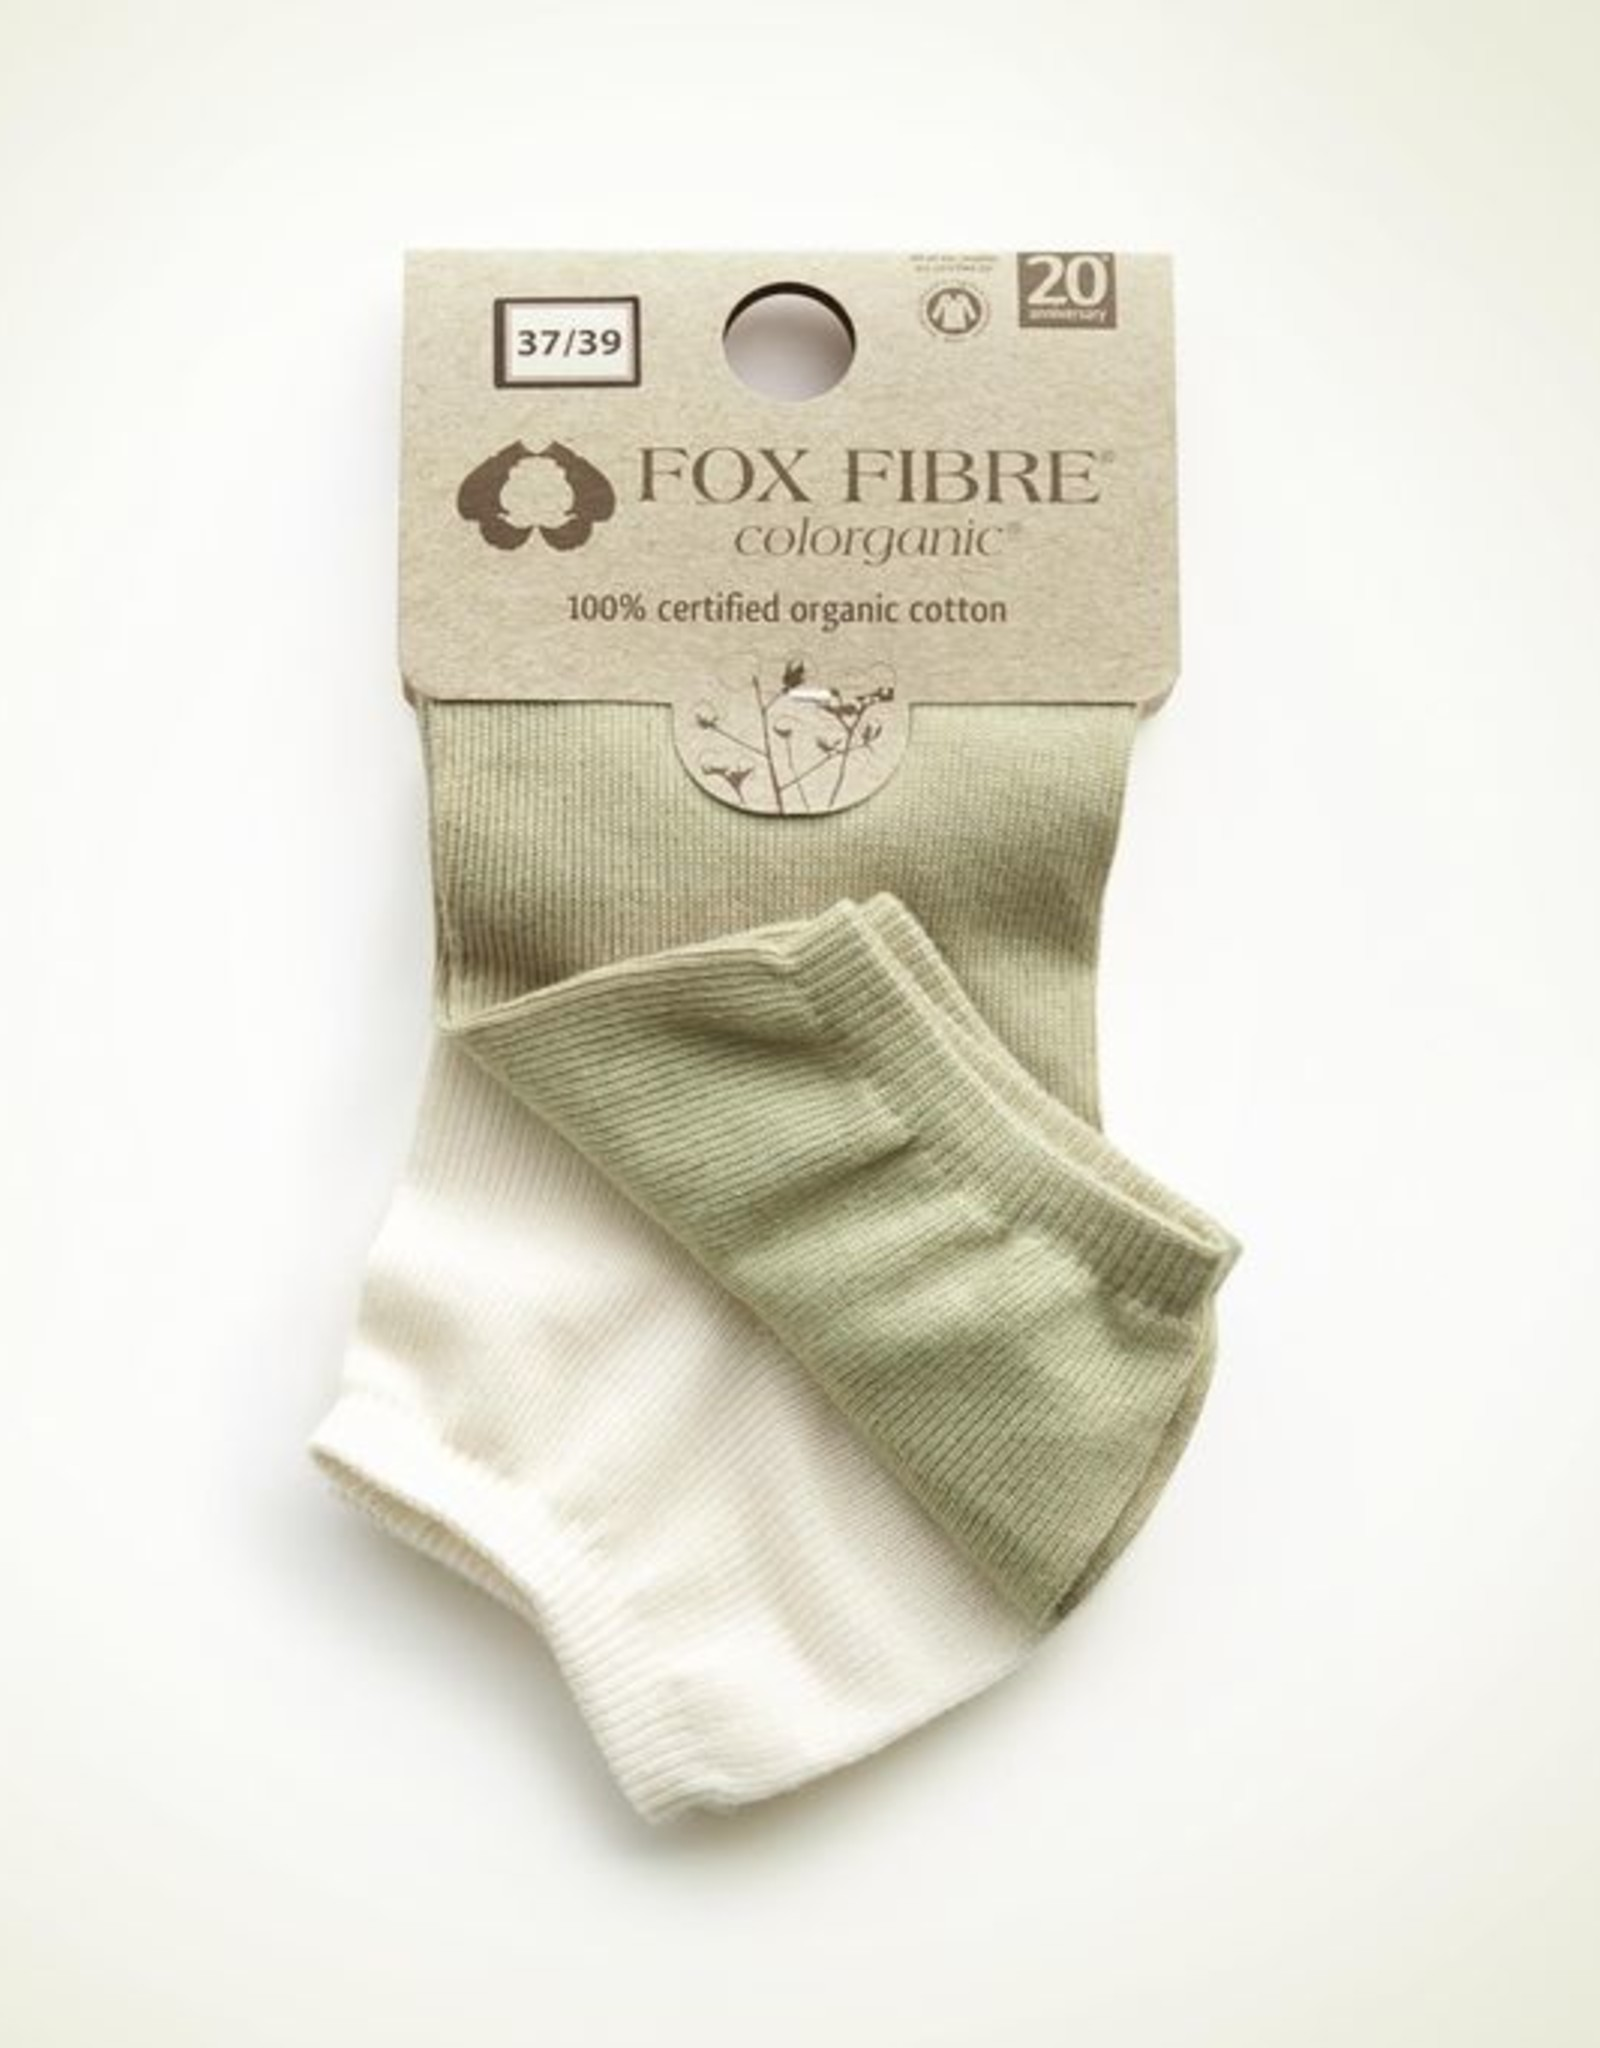 Packx2 thiny sport socks